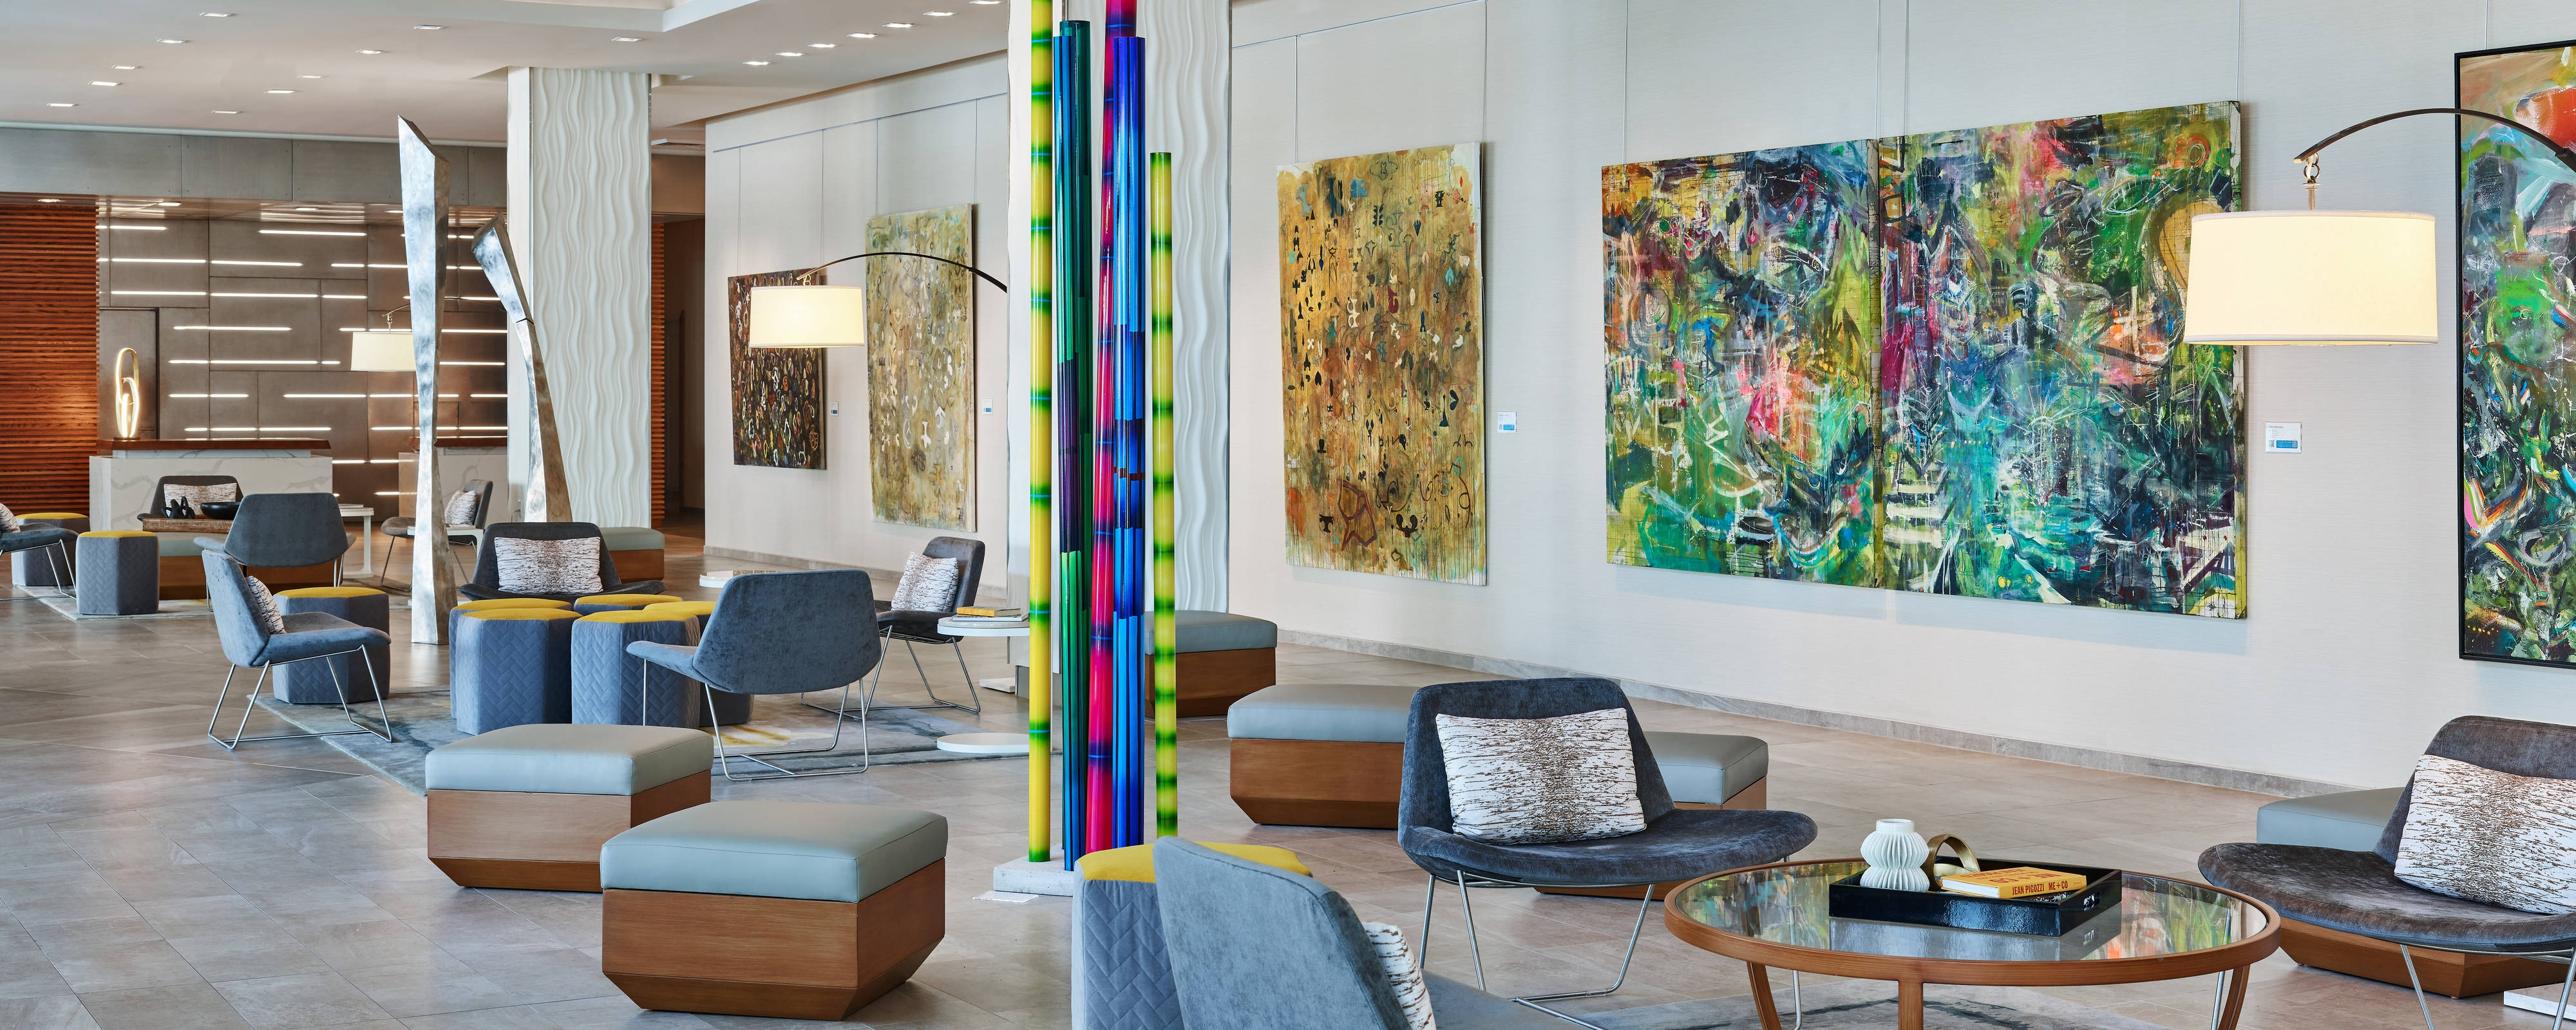 Art ovation hotel marriott autograph collection sarasota for A for art design hotel